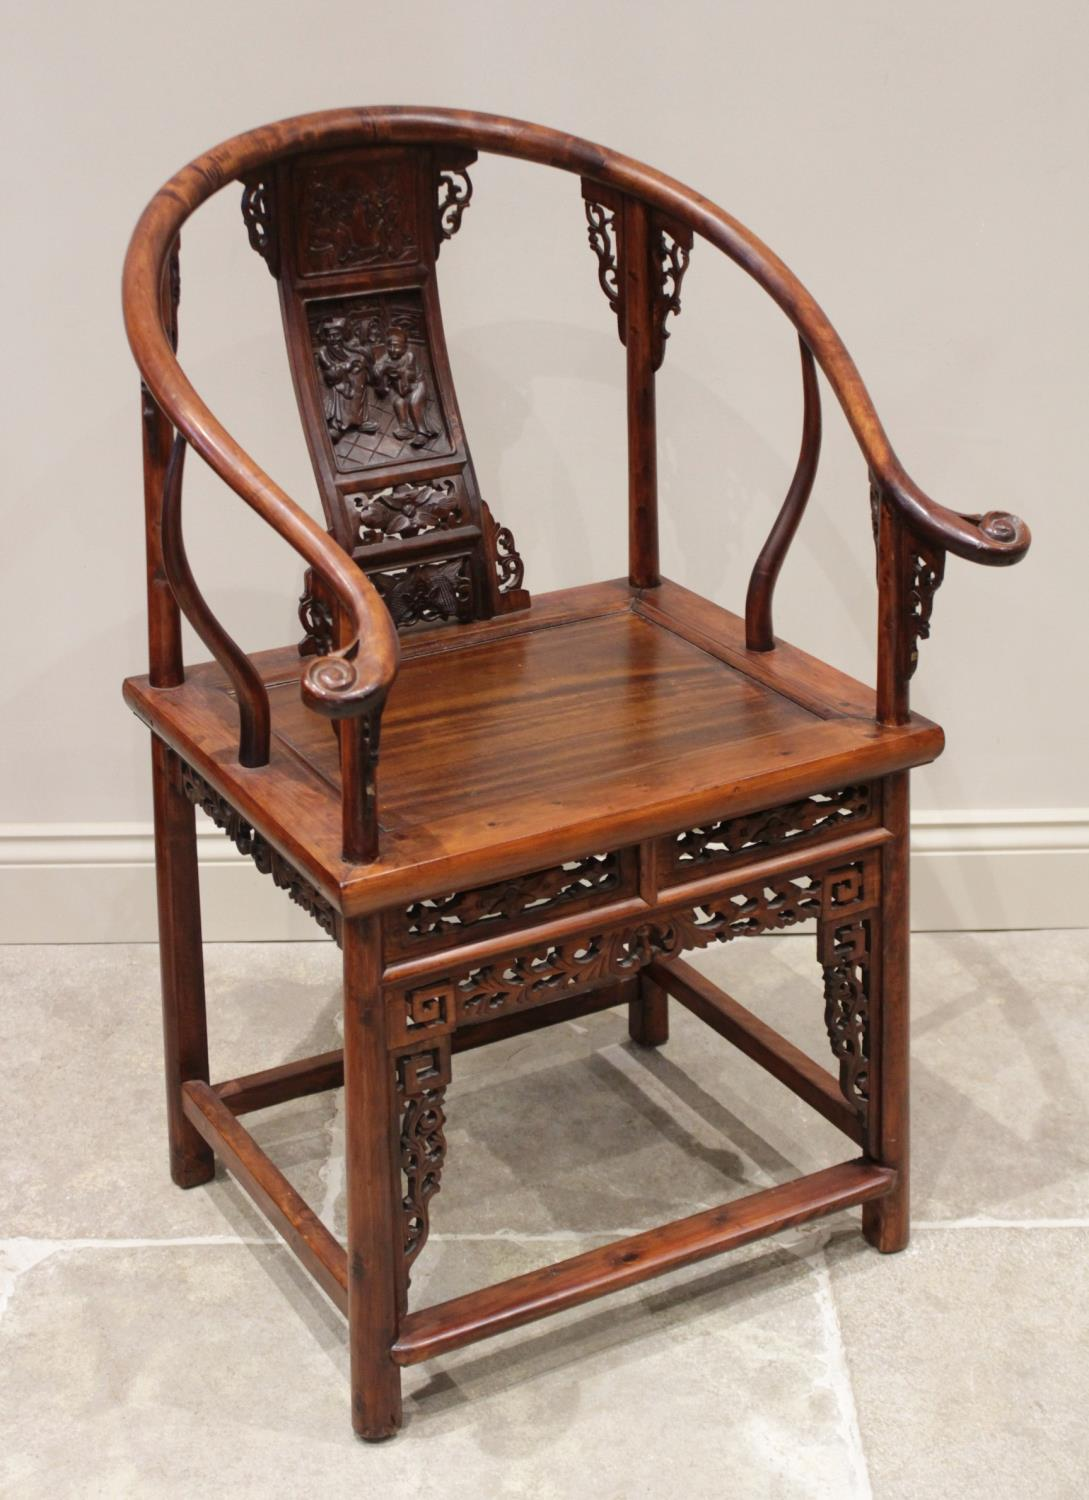 A Chinese stained wood altar chair, 20th century, the horse shoe shaped top rail with scrolled